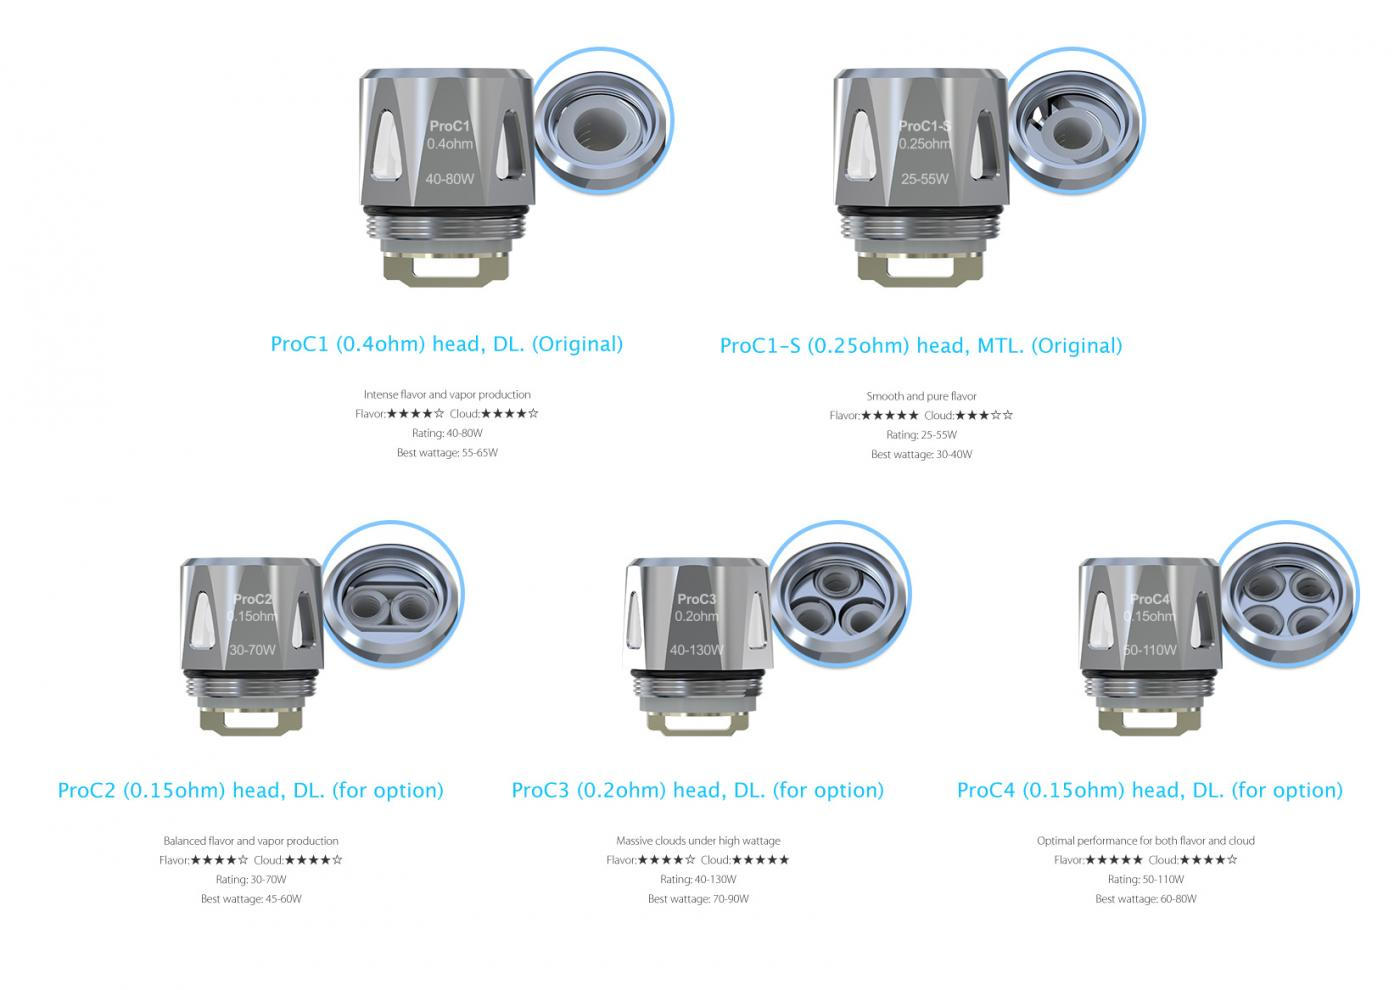 5 pcs replacement coils for Joyetech evic primo se